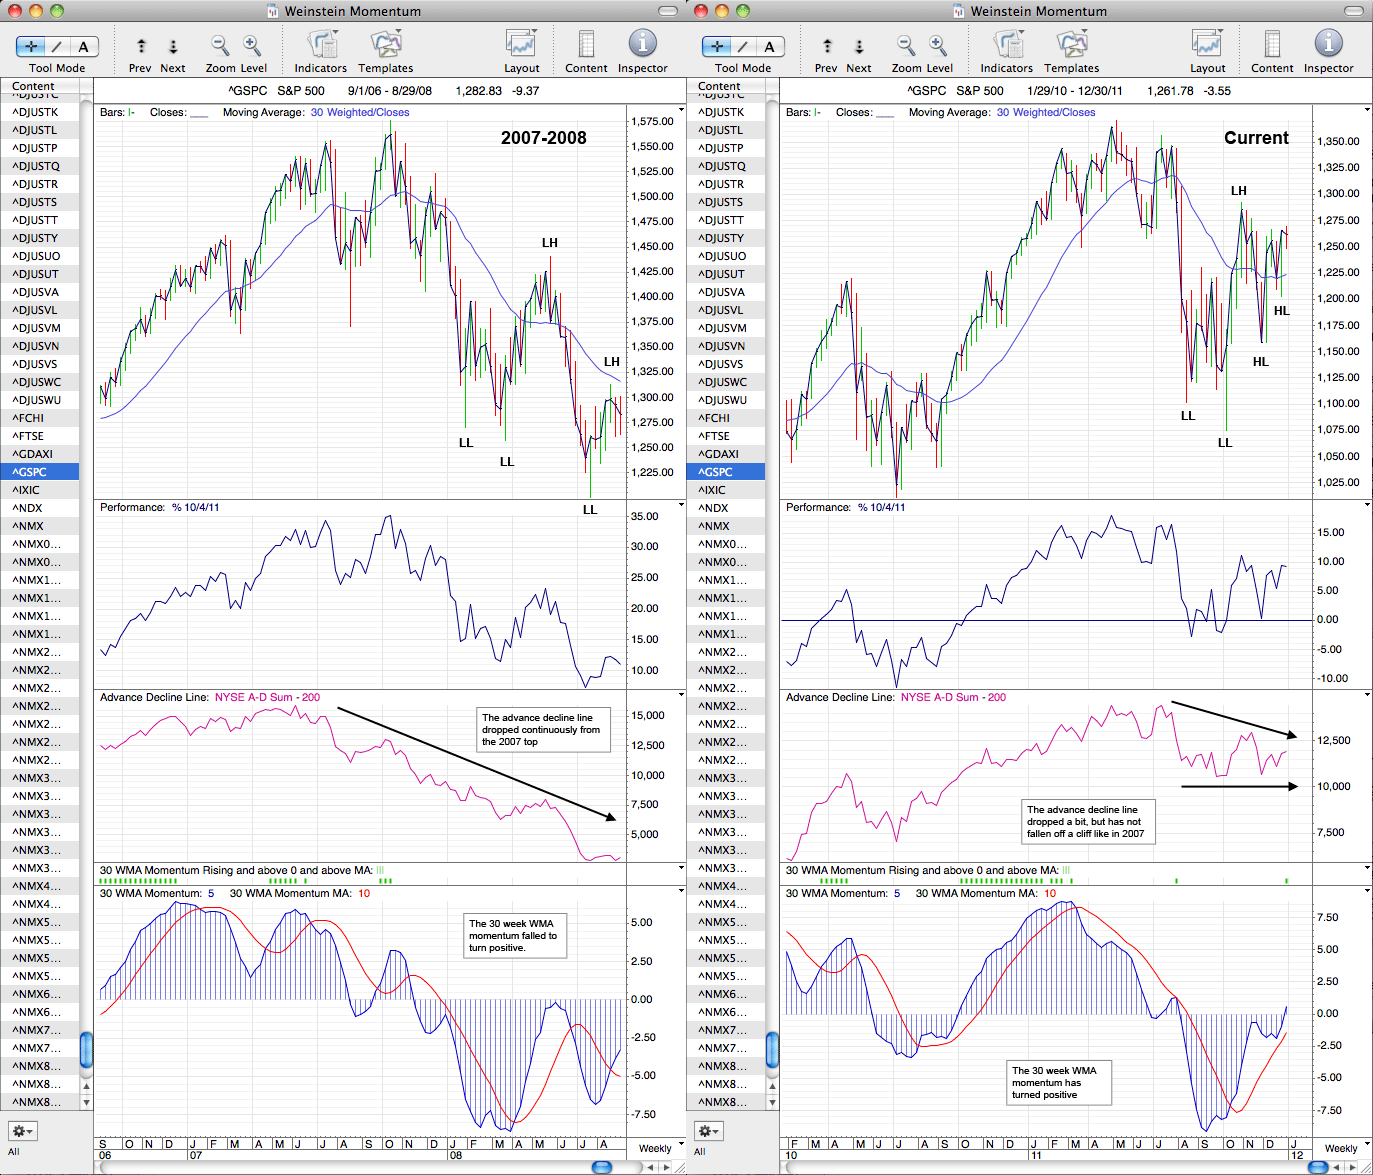 spx_comparison-2008-now.png